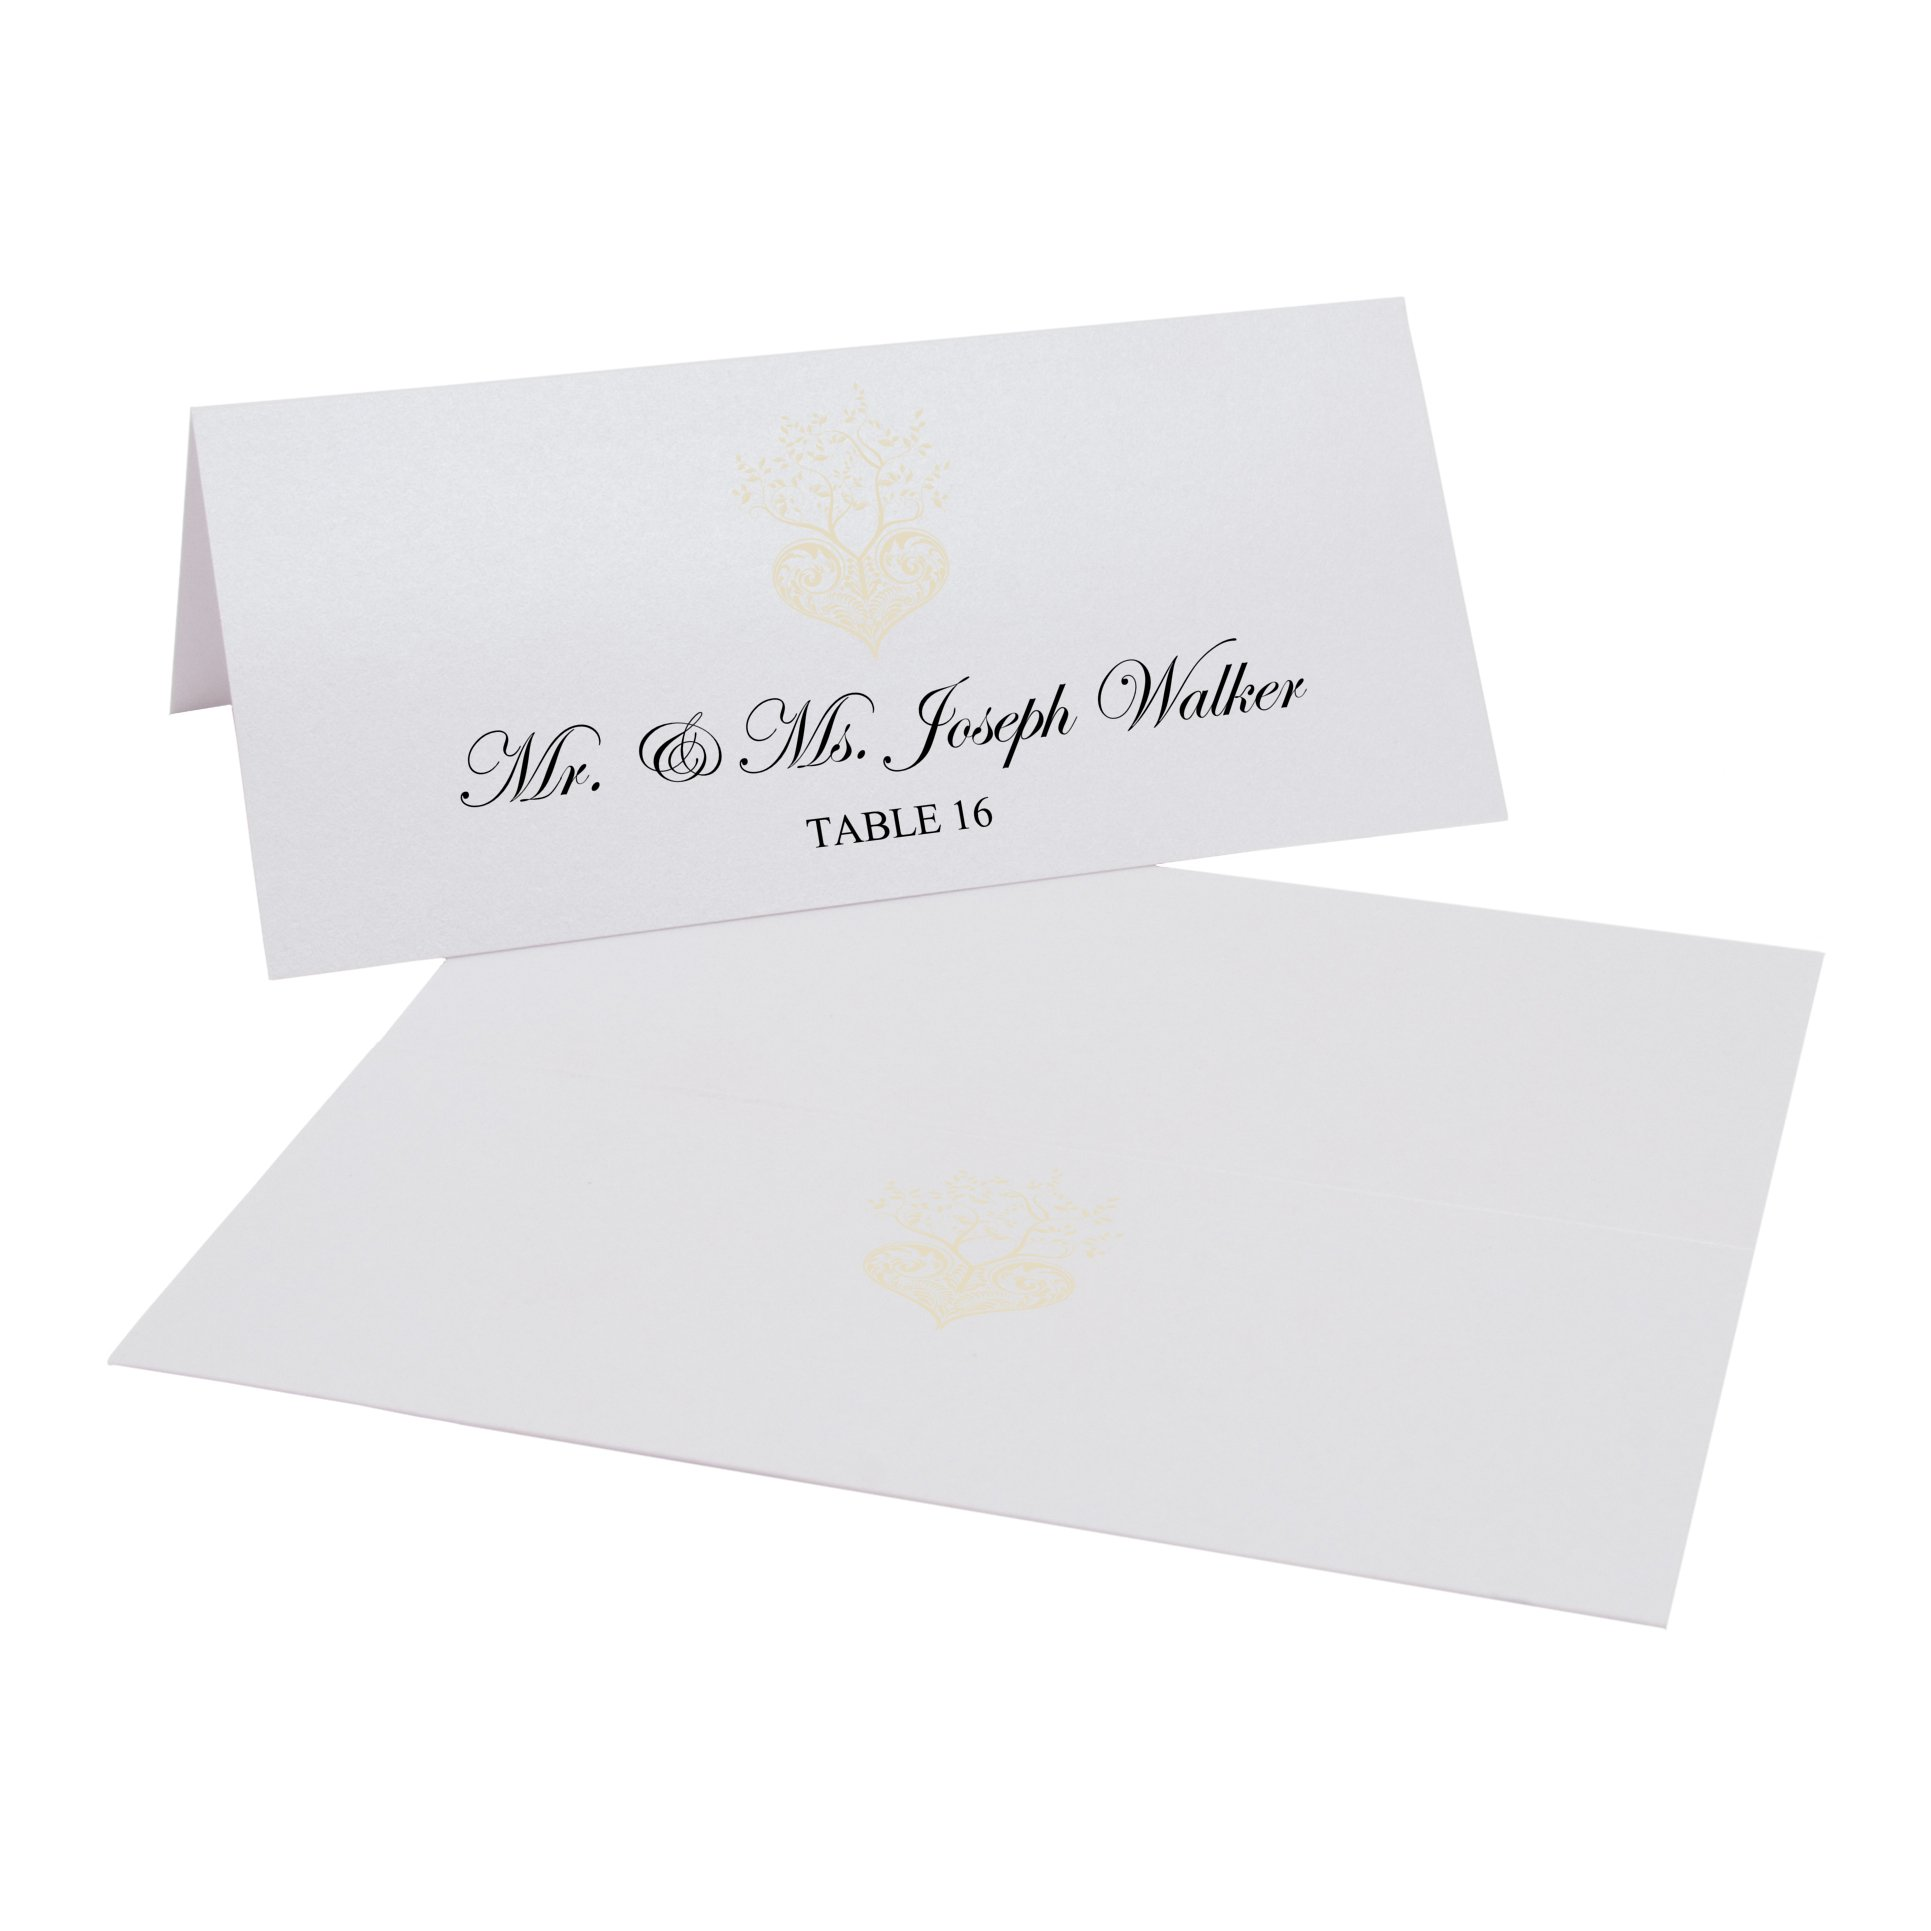 Tree of Life Heart Easy Print Place Cards, Pearl White, Ivory, Set of 425 (107 Sheets) by Documents and Designs